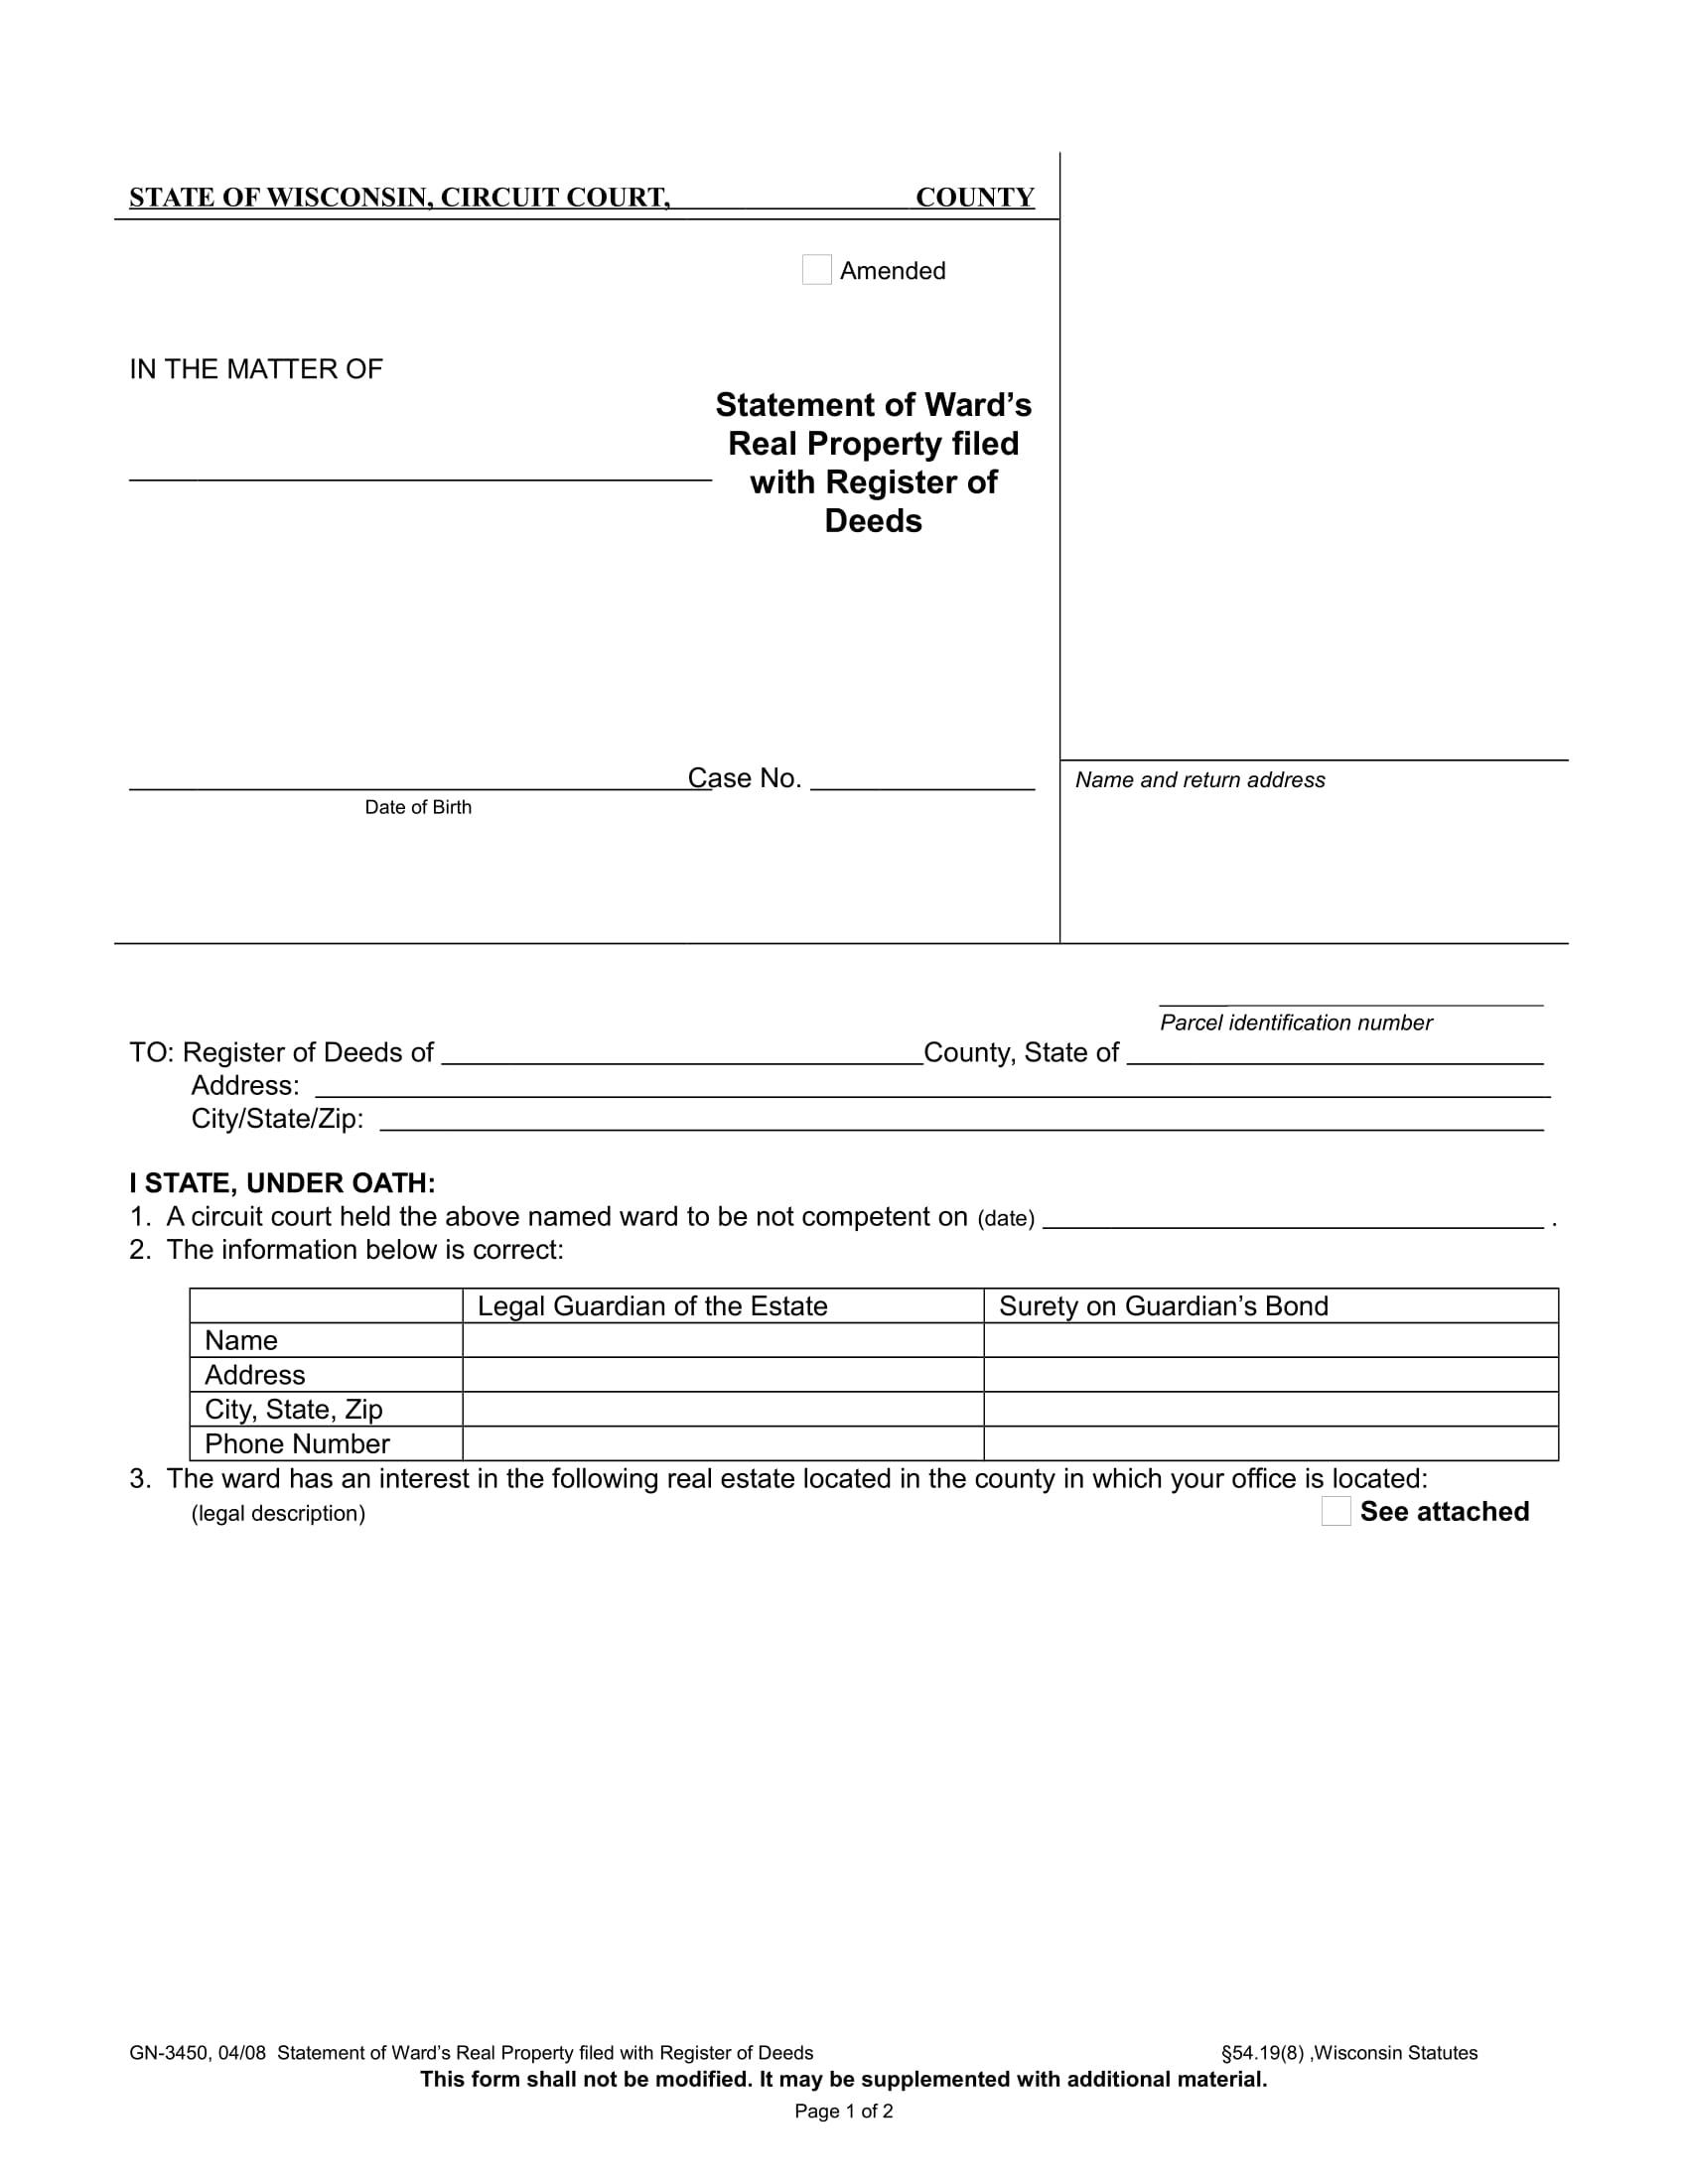 wards real property statement form 1